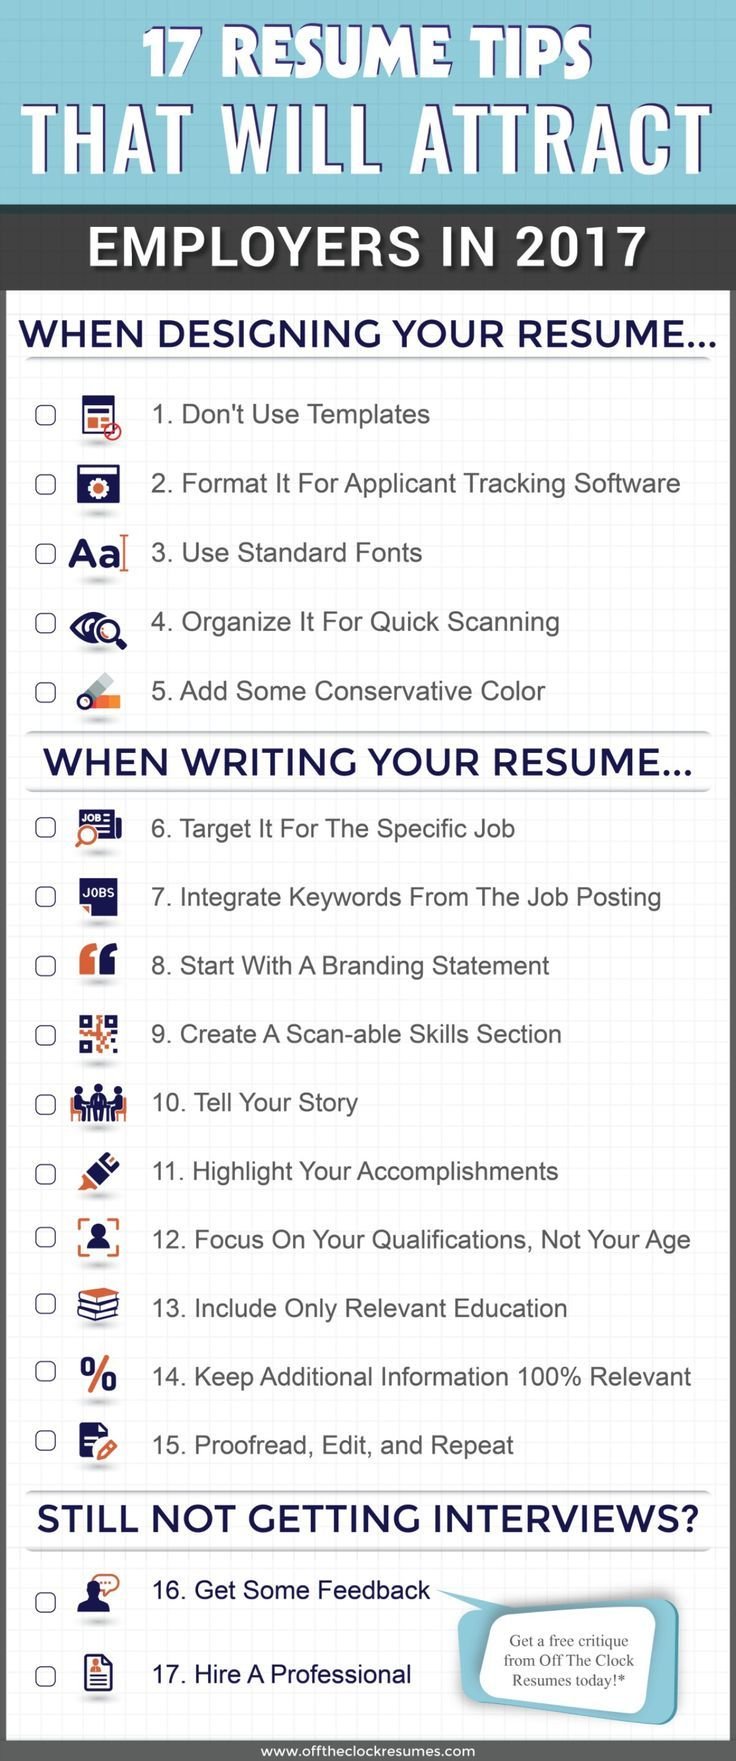 get ready for the 2017 job market and refresh your resume with our top resume writing tips and an infographic checklist